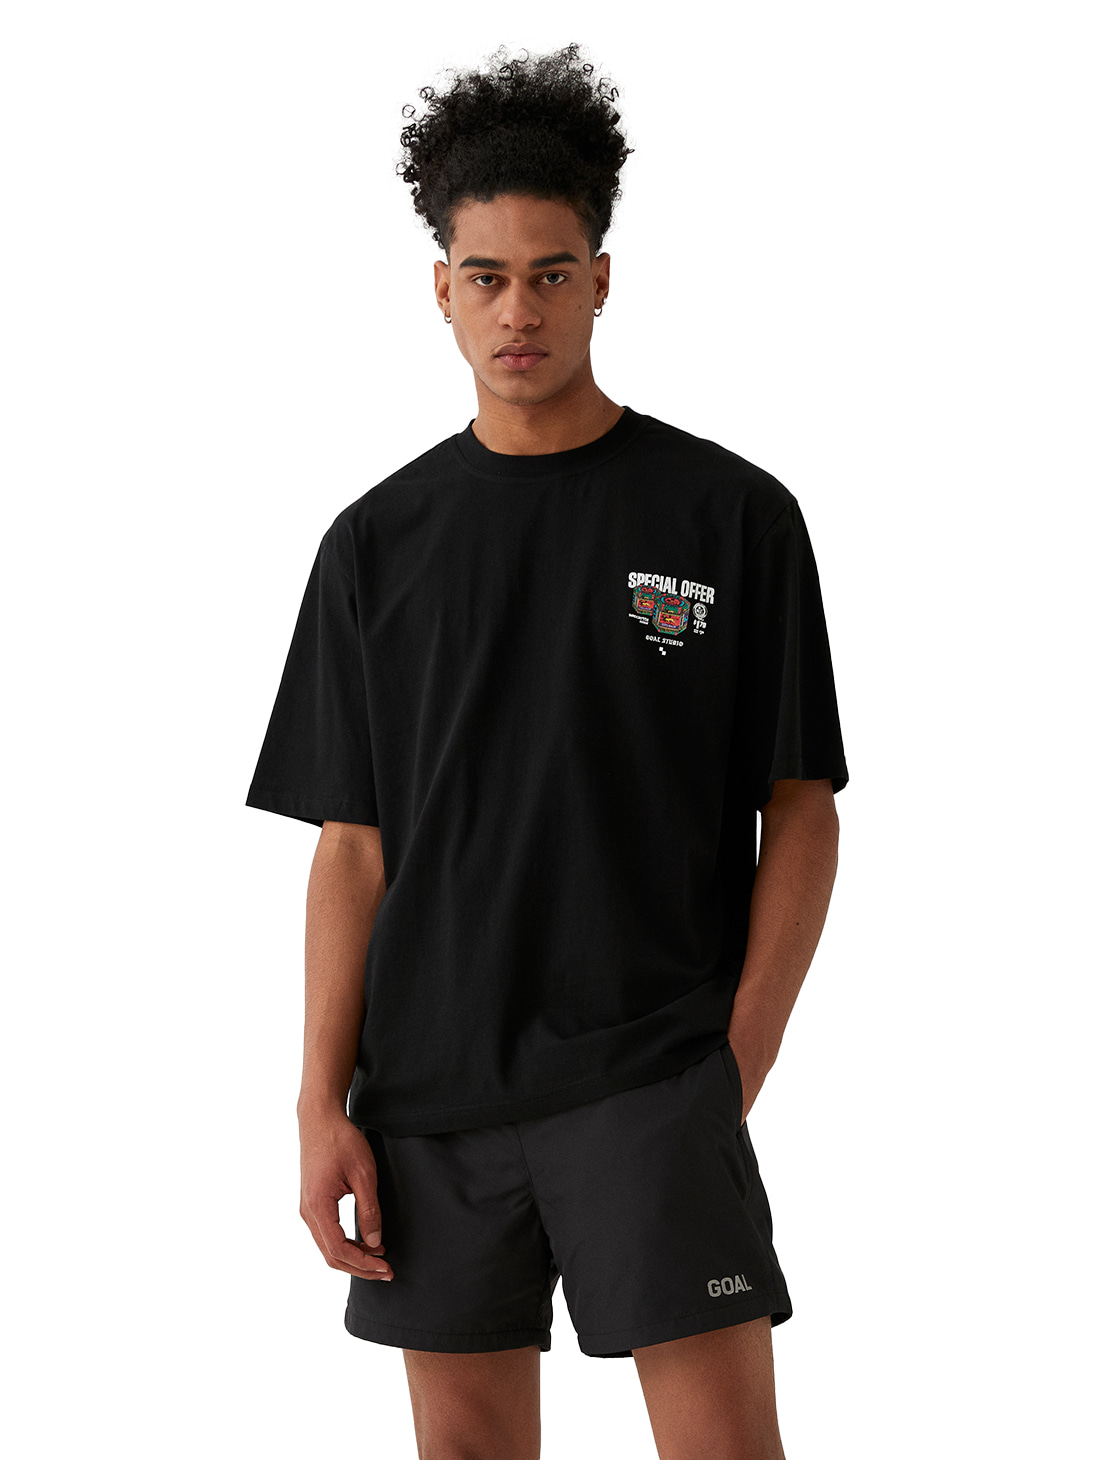 MC BALM LOGO GRAPHIC TEE - BLACK